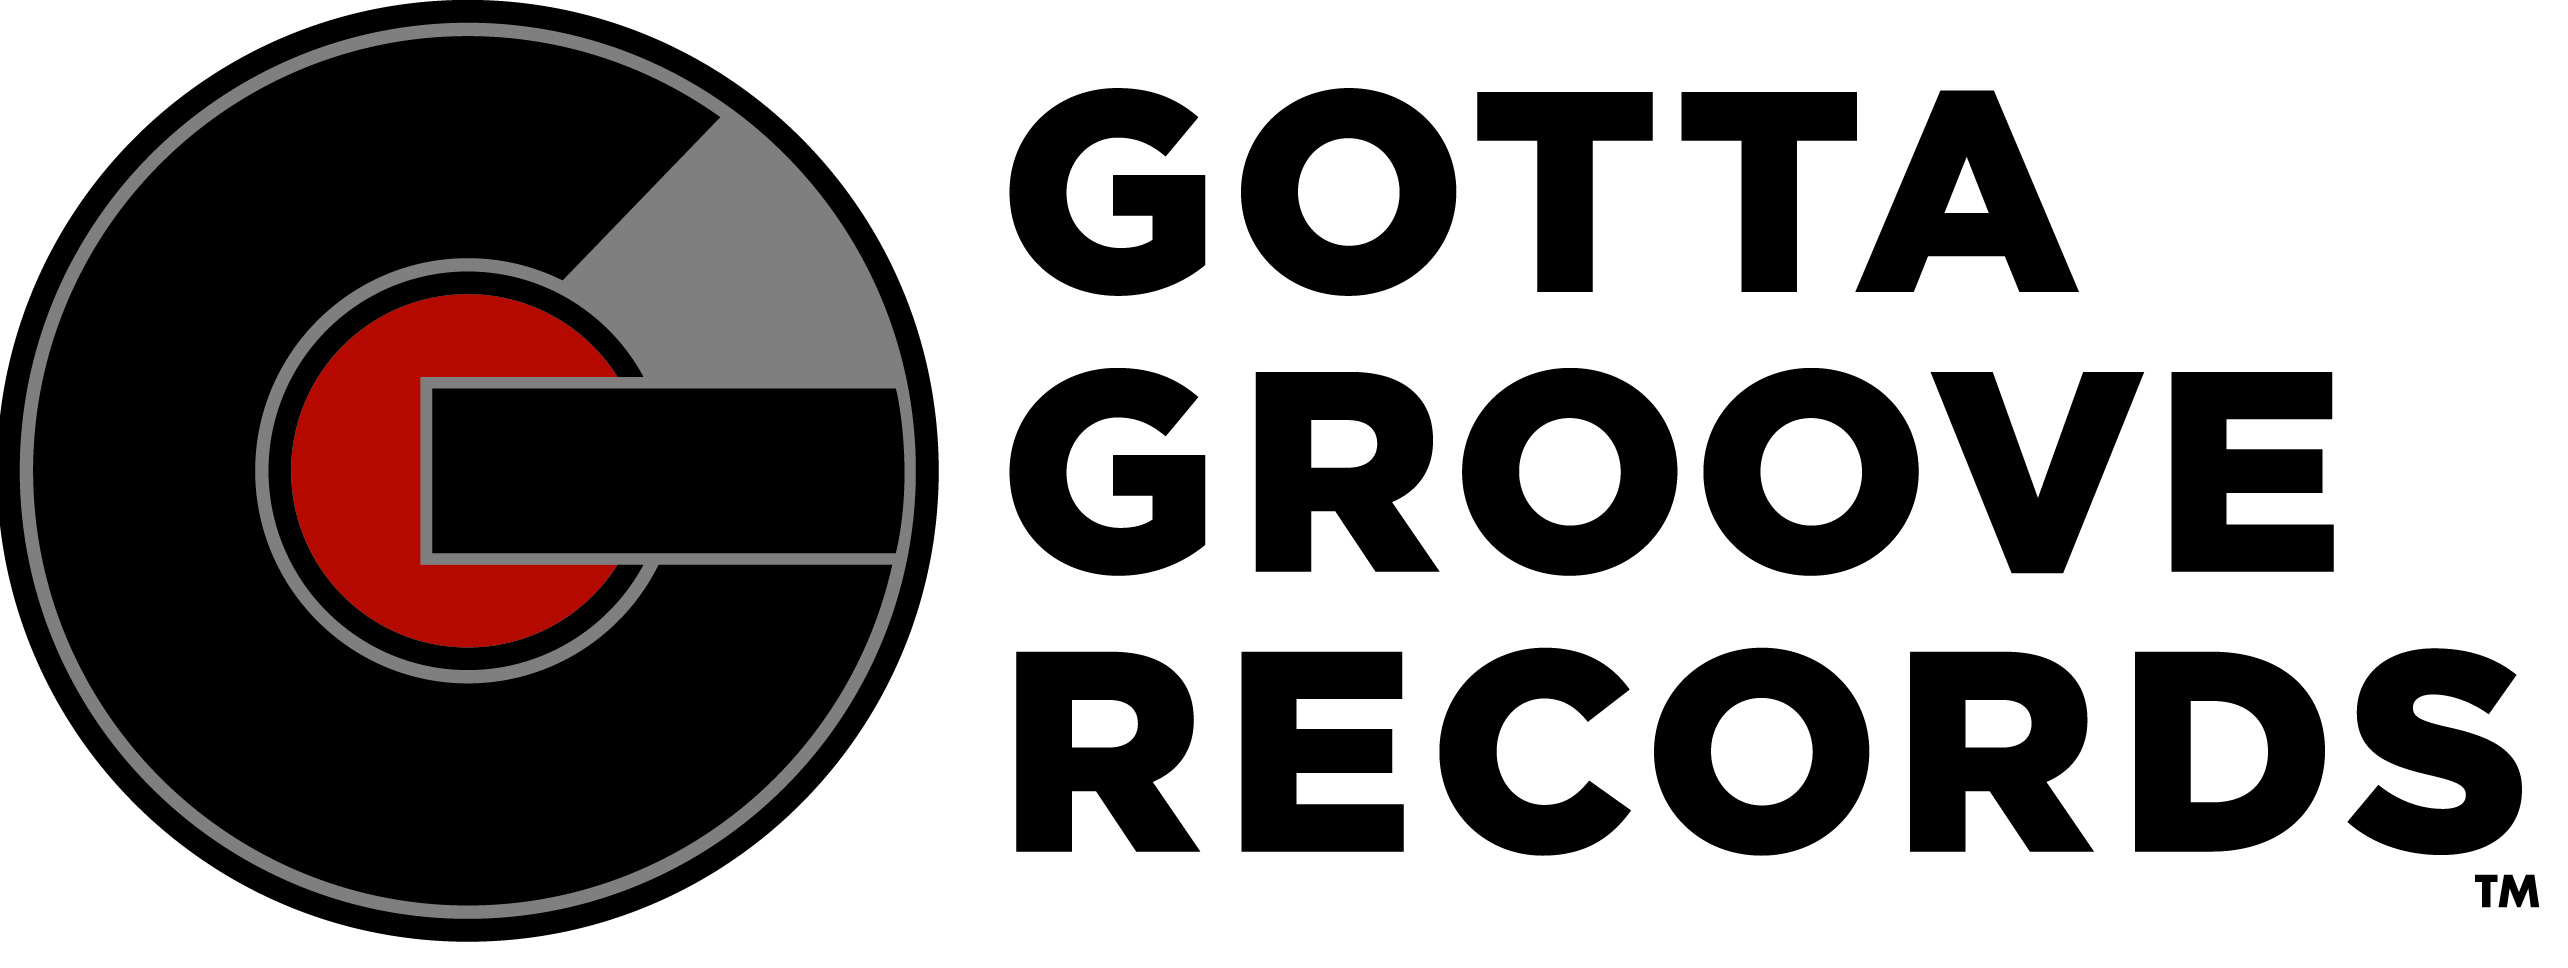 Gotta Groove Records, Inc.